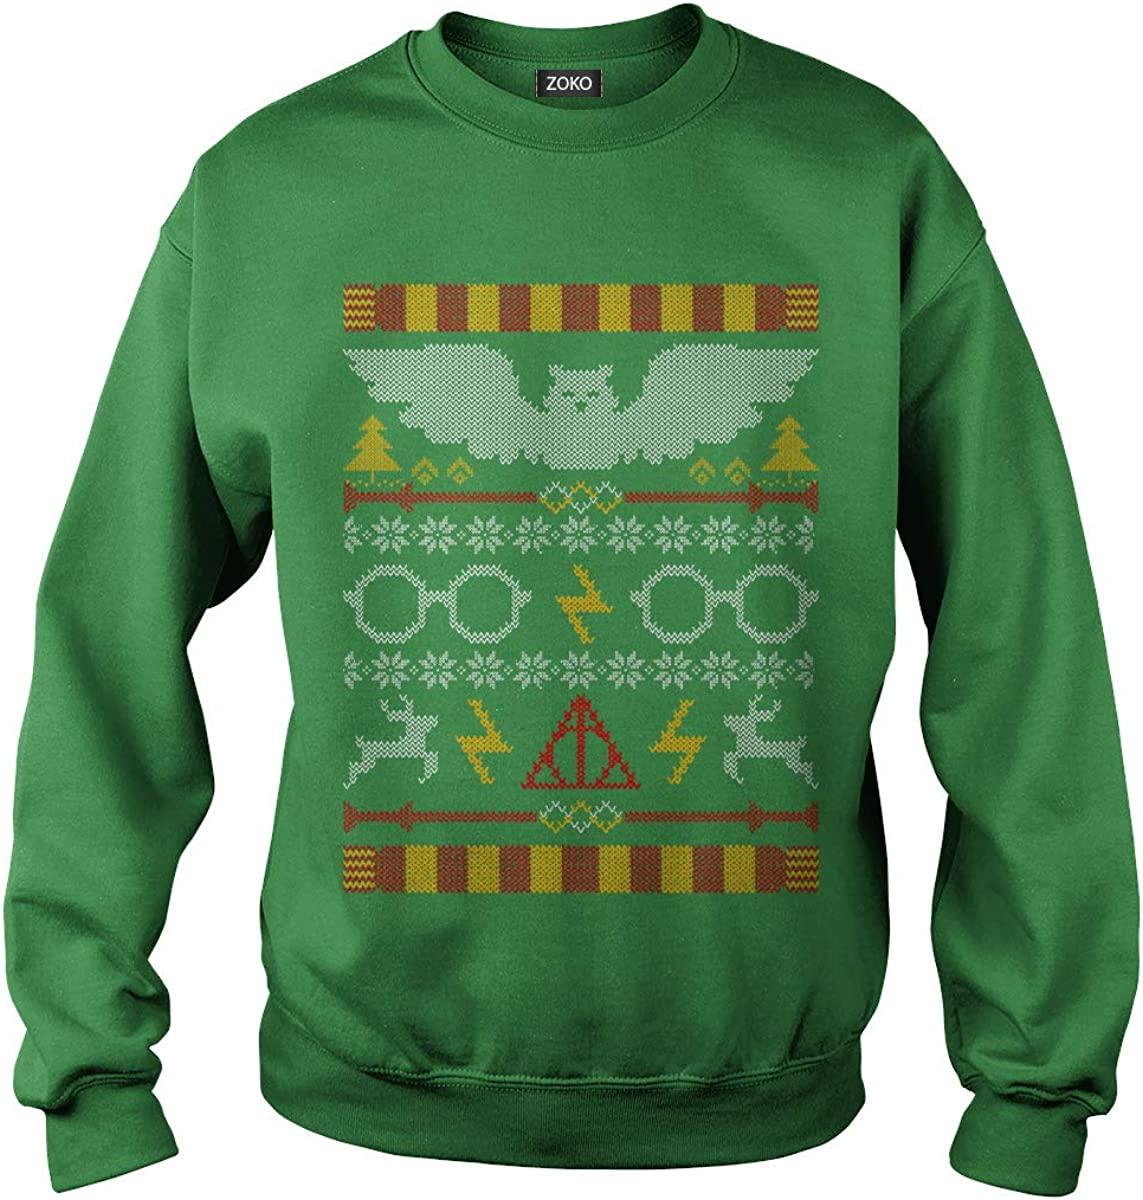 Zoko Apparel The Sweater That Lived Ugly Christmas T-Shirt